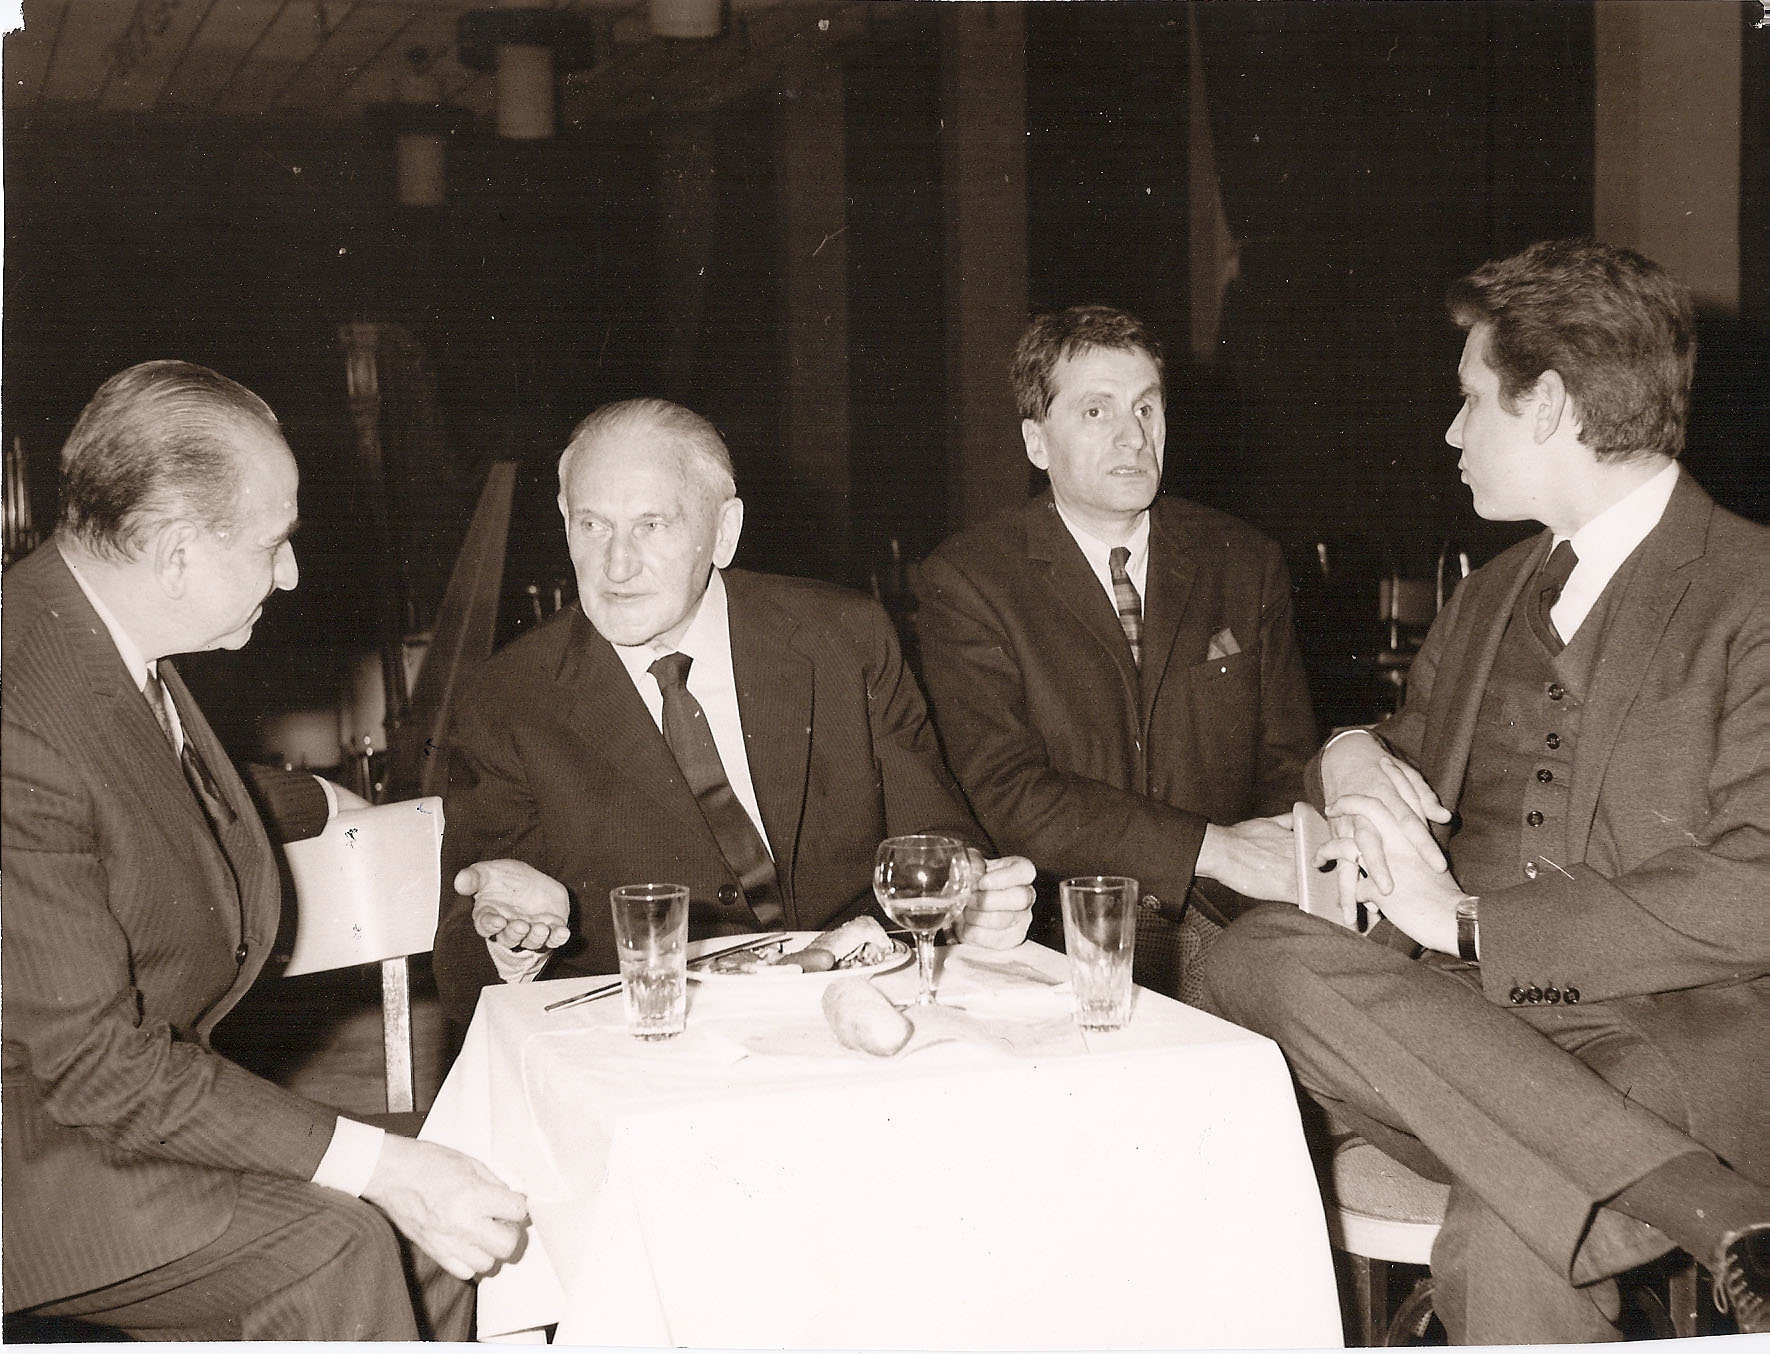 This picture taken on the occasion of the Royan Festival depicts, from left to right, the conductor Charles Bruck, Hermann Scherchen, Iannis Xenakis and publisher Mario Bois. 1955, ca.